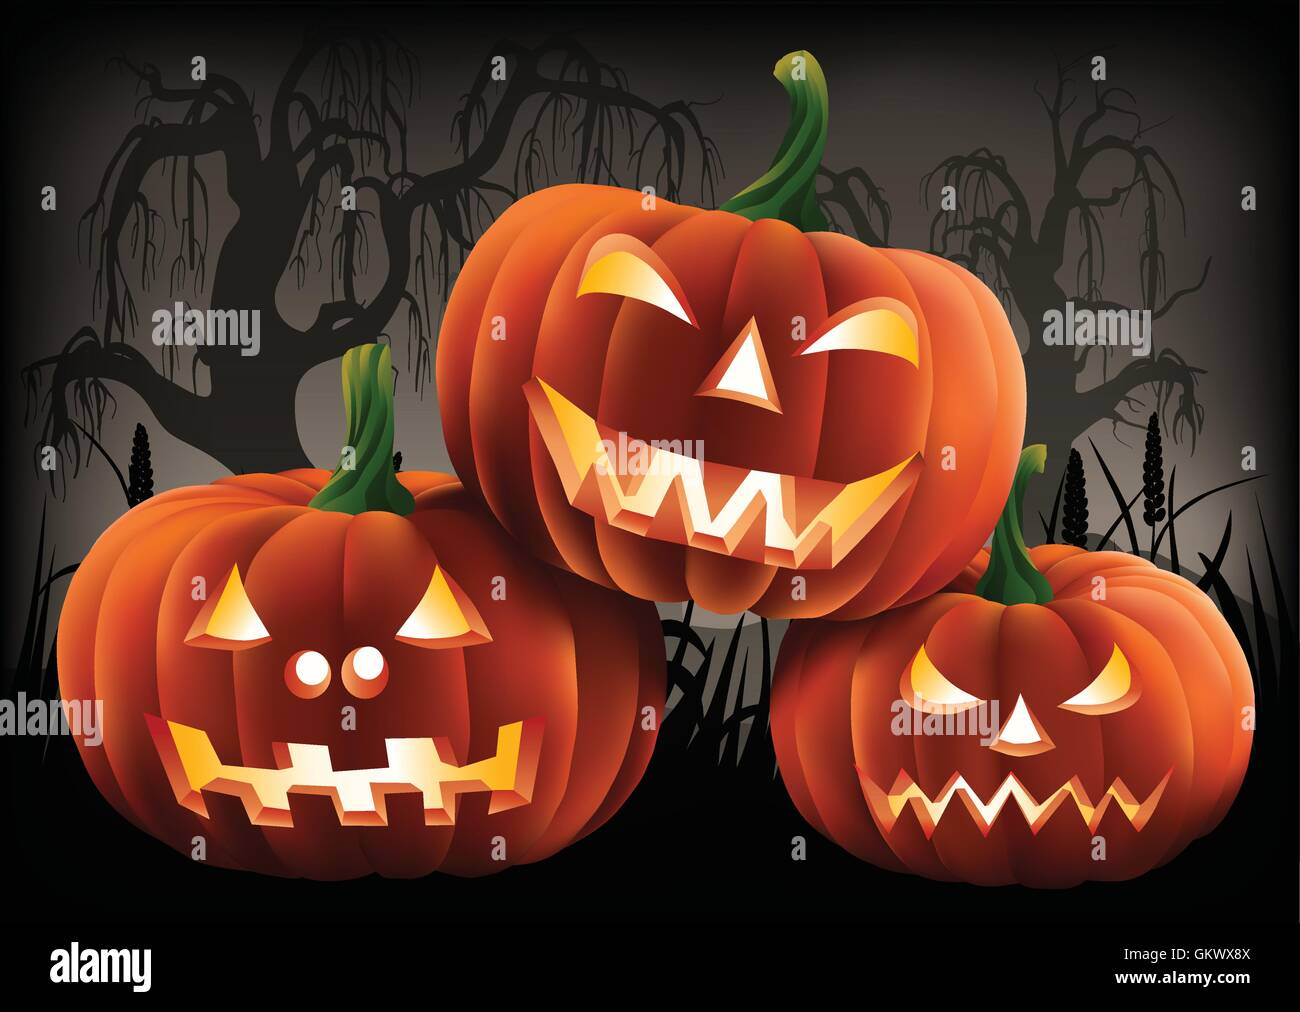 Three carved pumpkins in a dark, ominous, Halloween scene. - Stock Vector